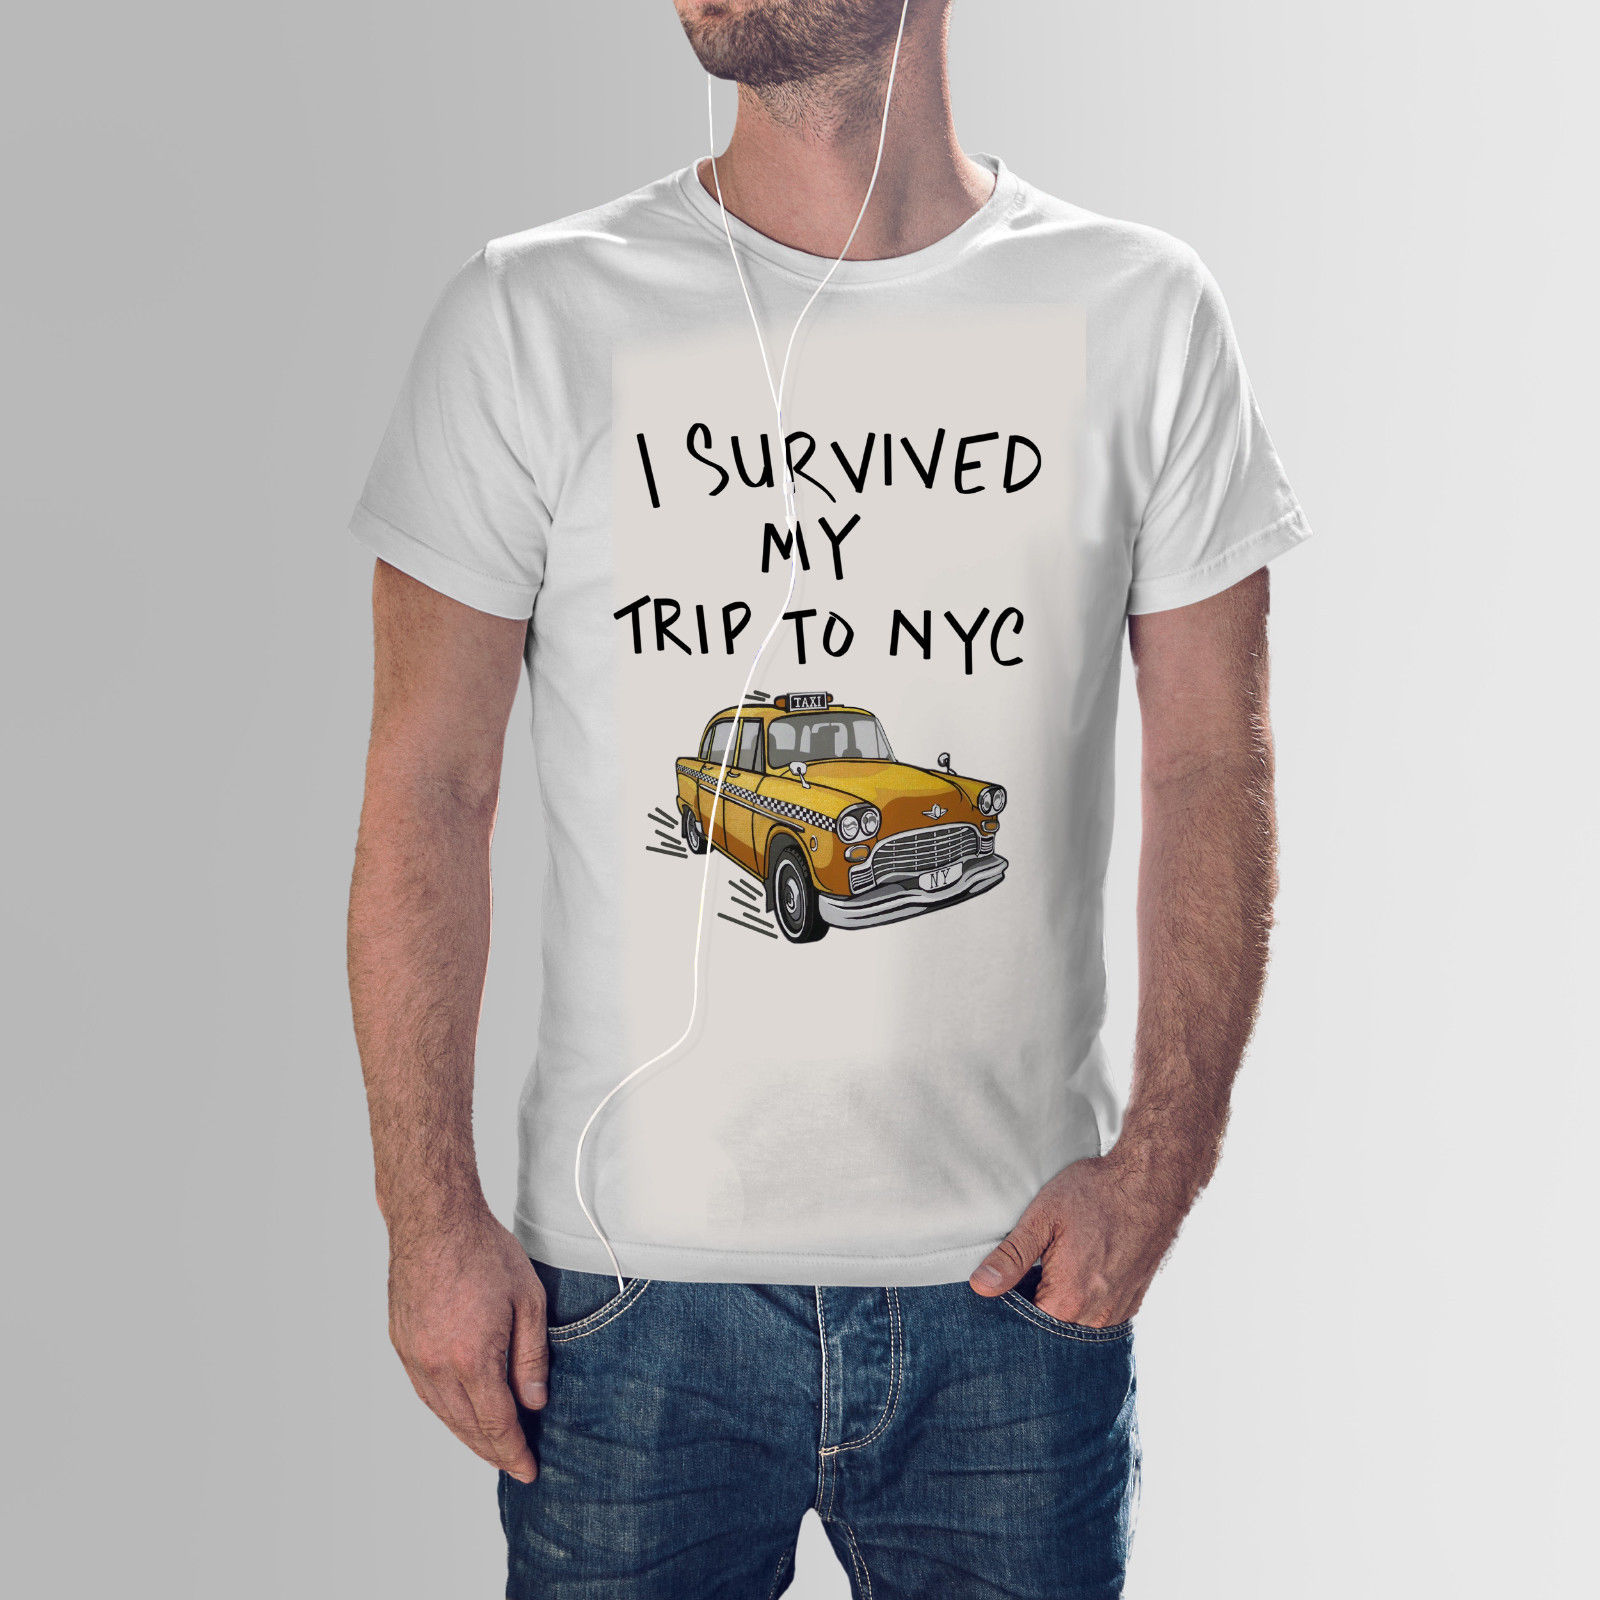 Gildan I Survived My Trip To Nyc T-Shirt, Inspired from movie Spiderman Homecoming